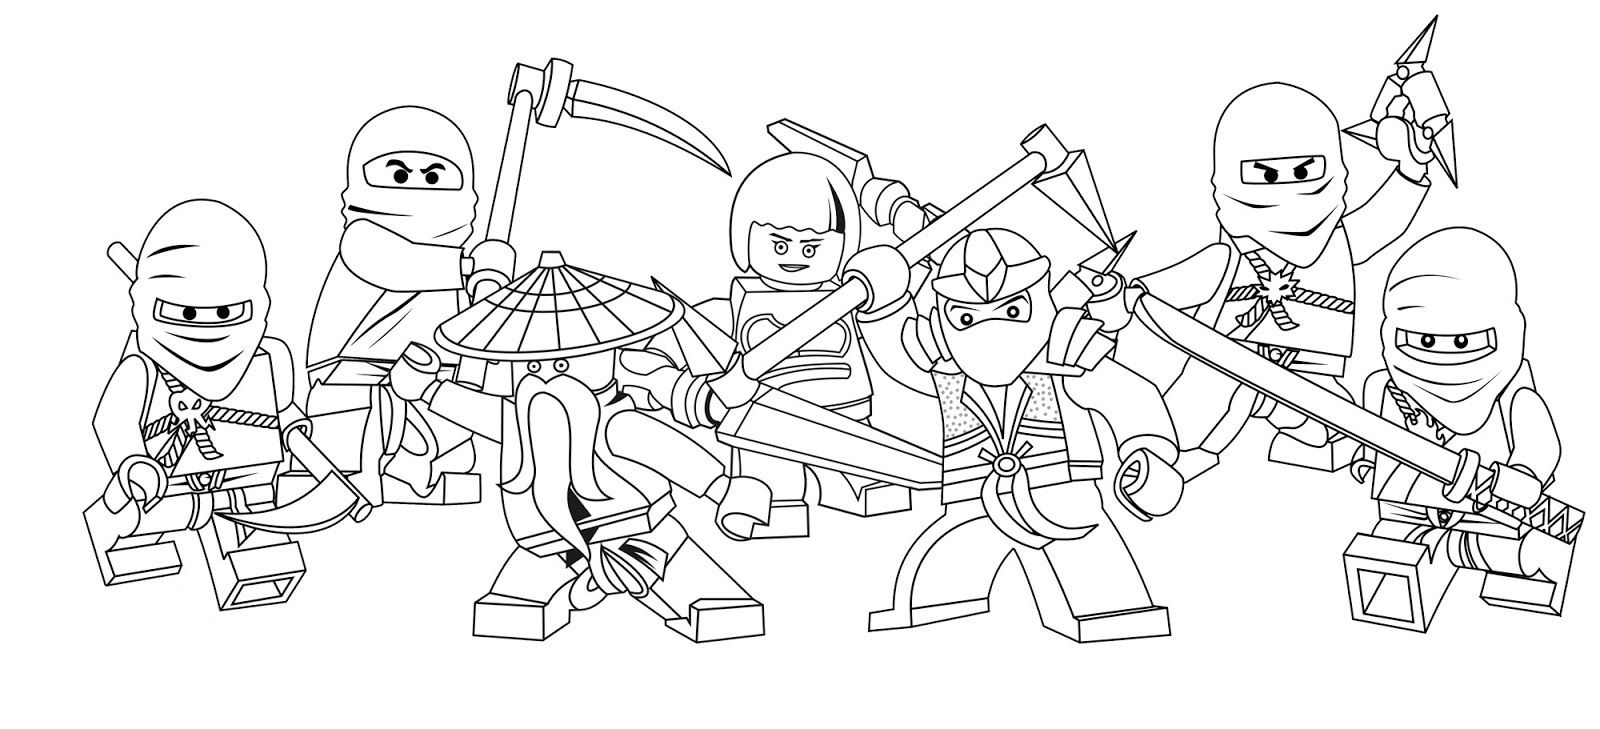 Ausmalbilder Geburtstag 75 : Free Printable Ninjago Coloring Pages For Kids Kinder Party Party